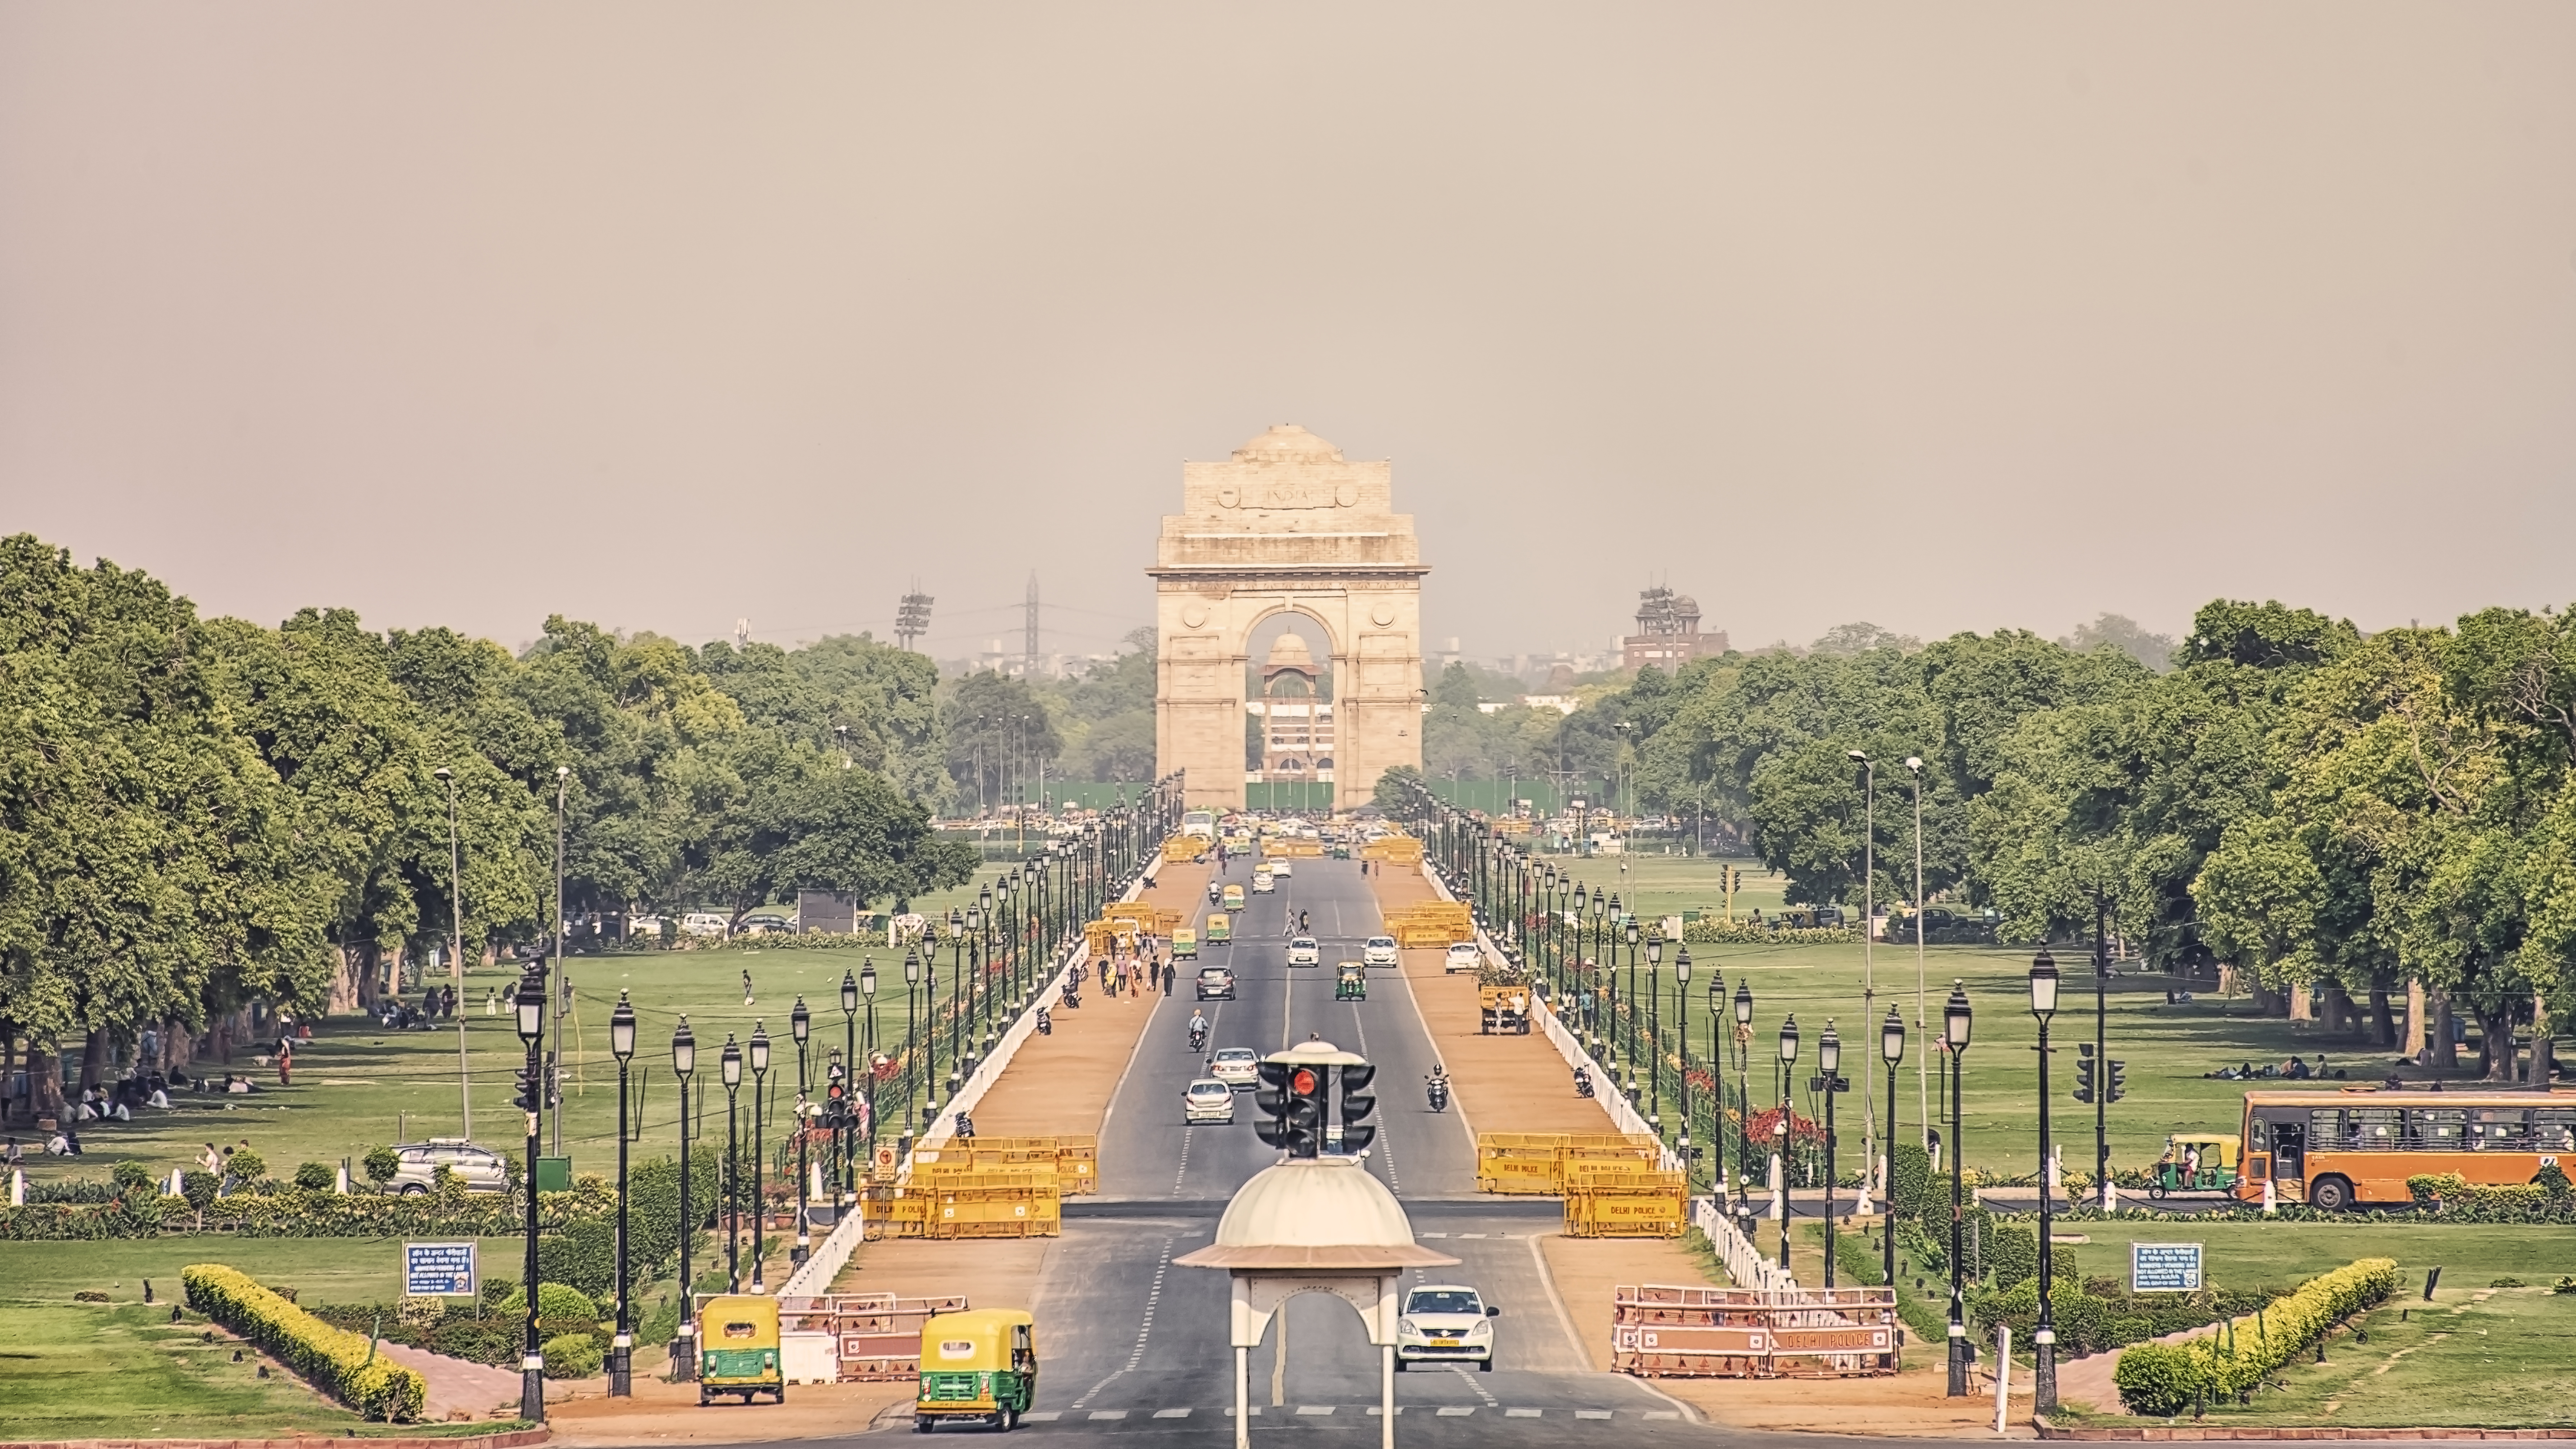 The India Gate which is in Lutyens Delhi where a person wanting to book the 5 Ashoka Road address, which is popular as a wedding venue, can also check its availability on a particular date, charges and rules among other details through the mobile application, the official said.